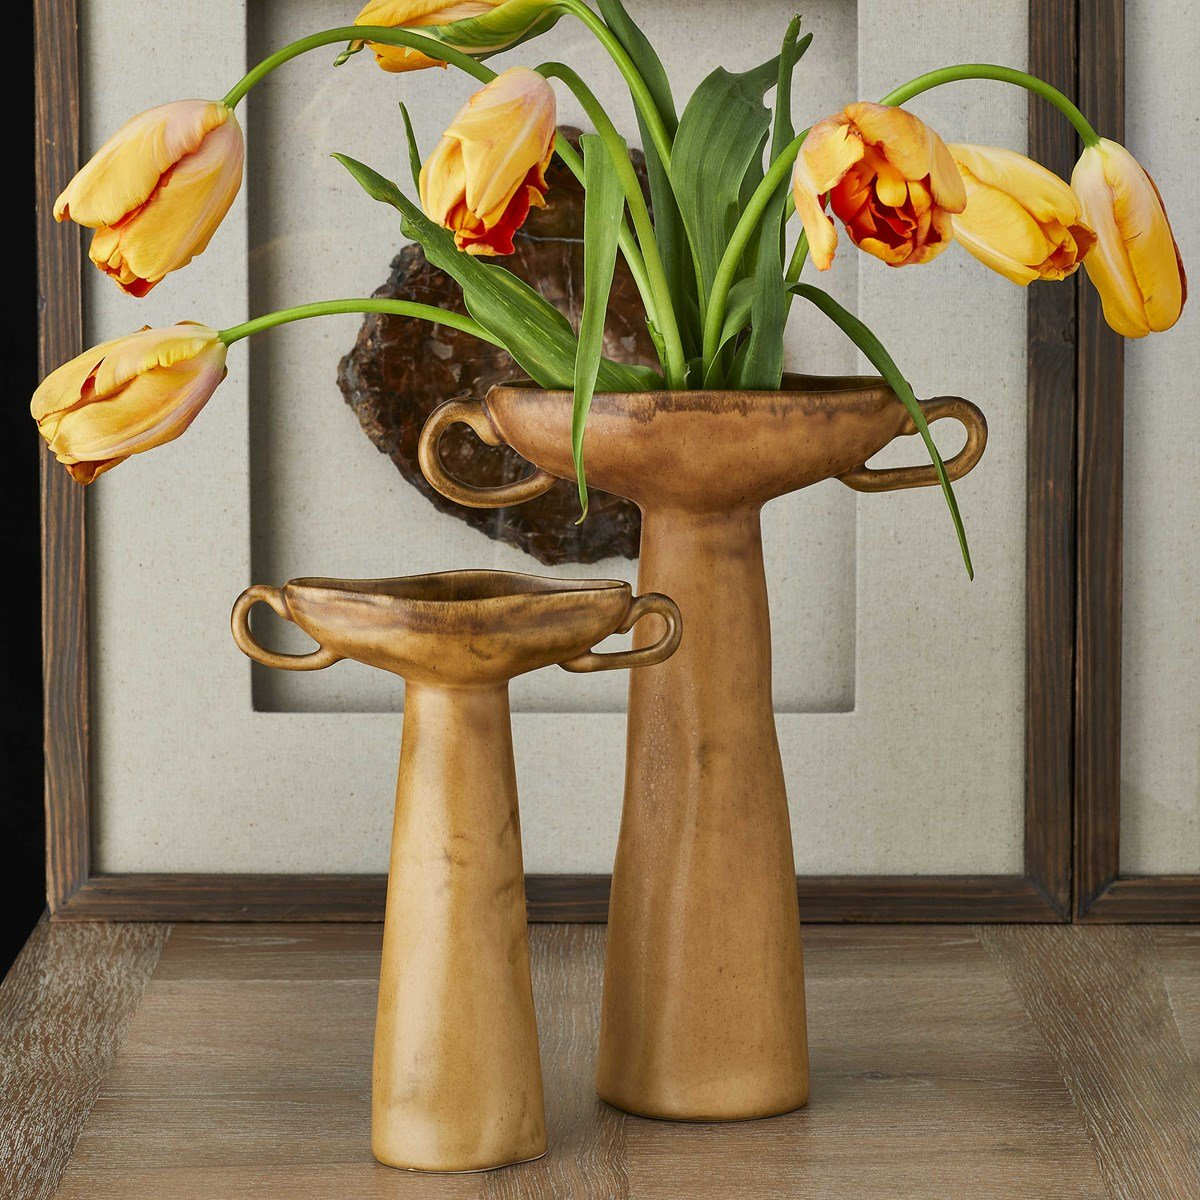 Warped gold vases look chic and retro